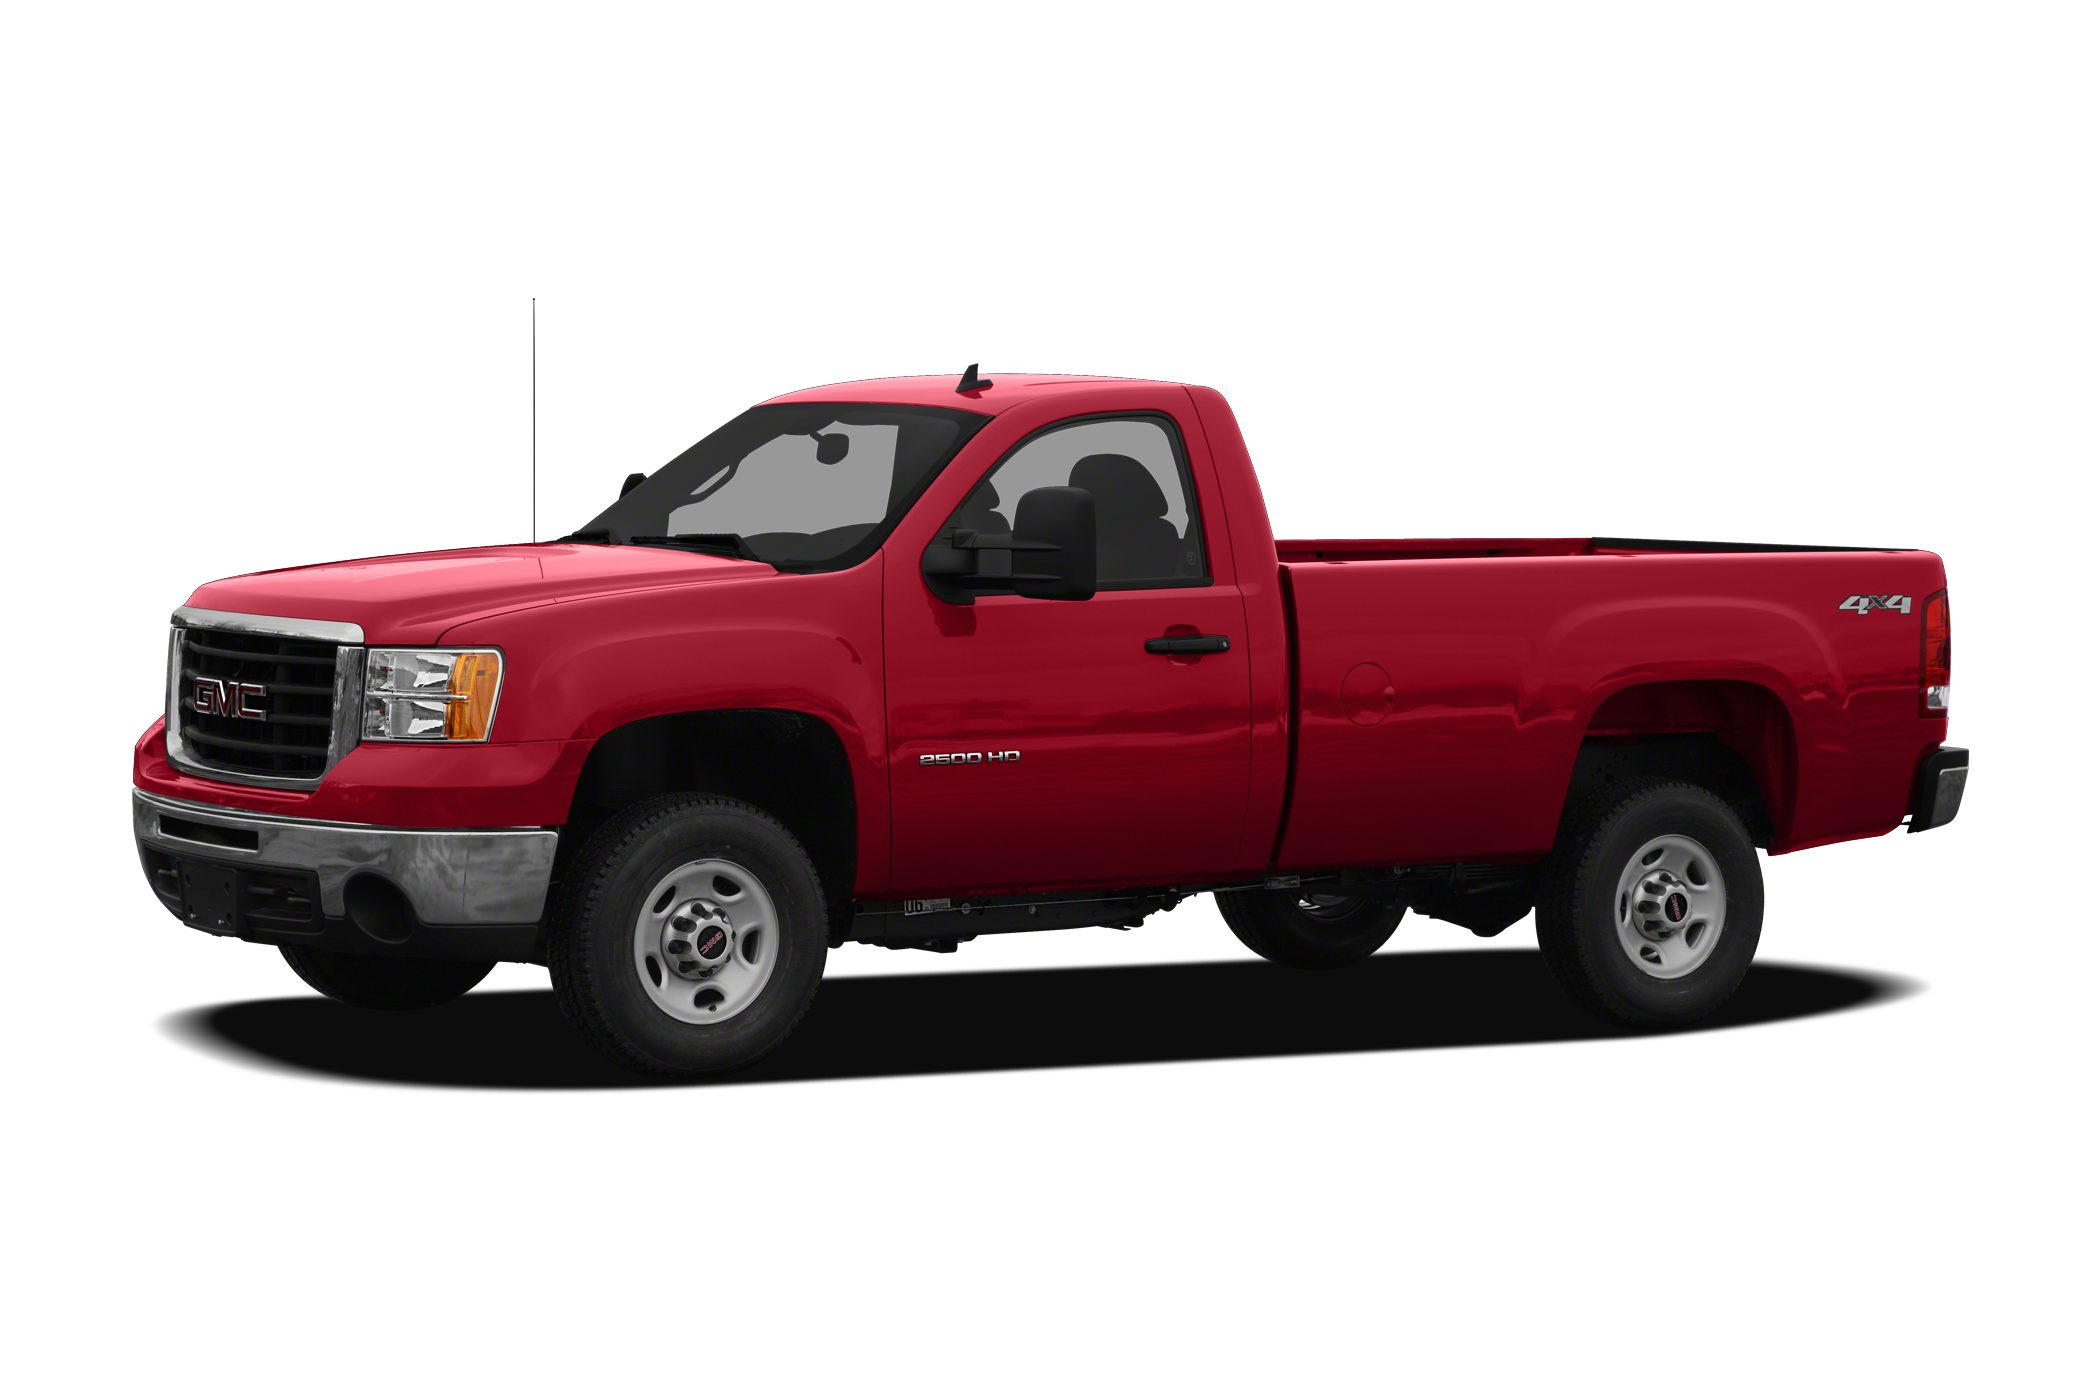 2010 GMC Sierra 2500 Work Truck Crew Cab Pickup for sale in San Bernardino for $26,989 with 63,858 miles